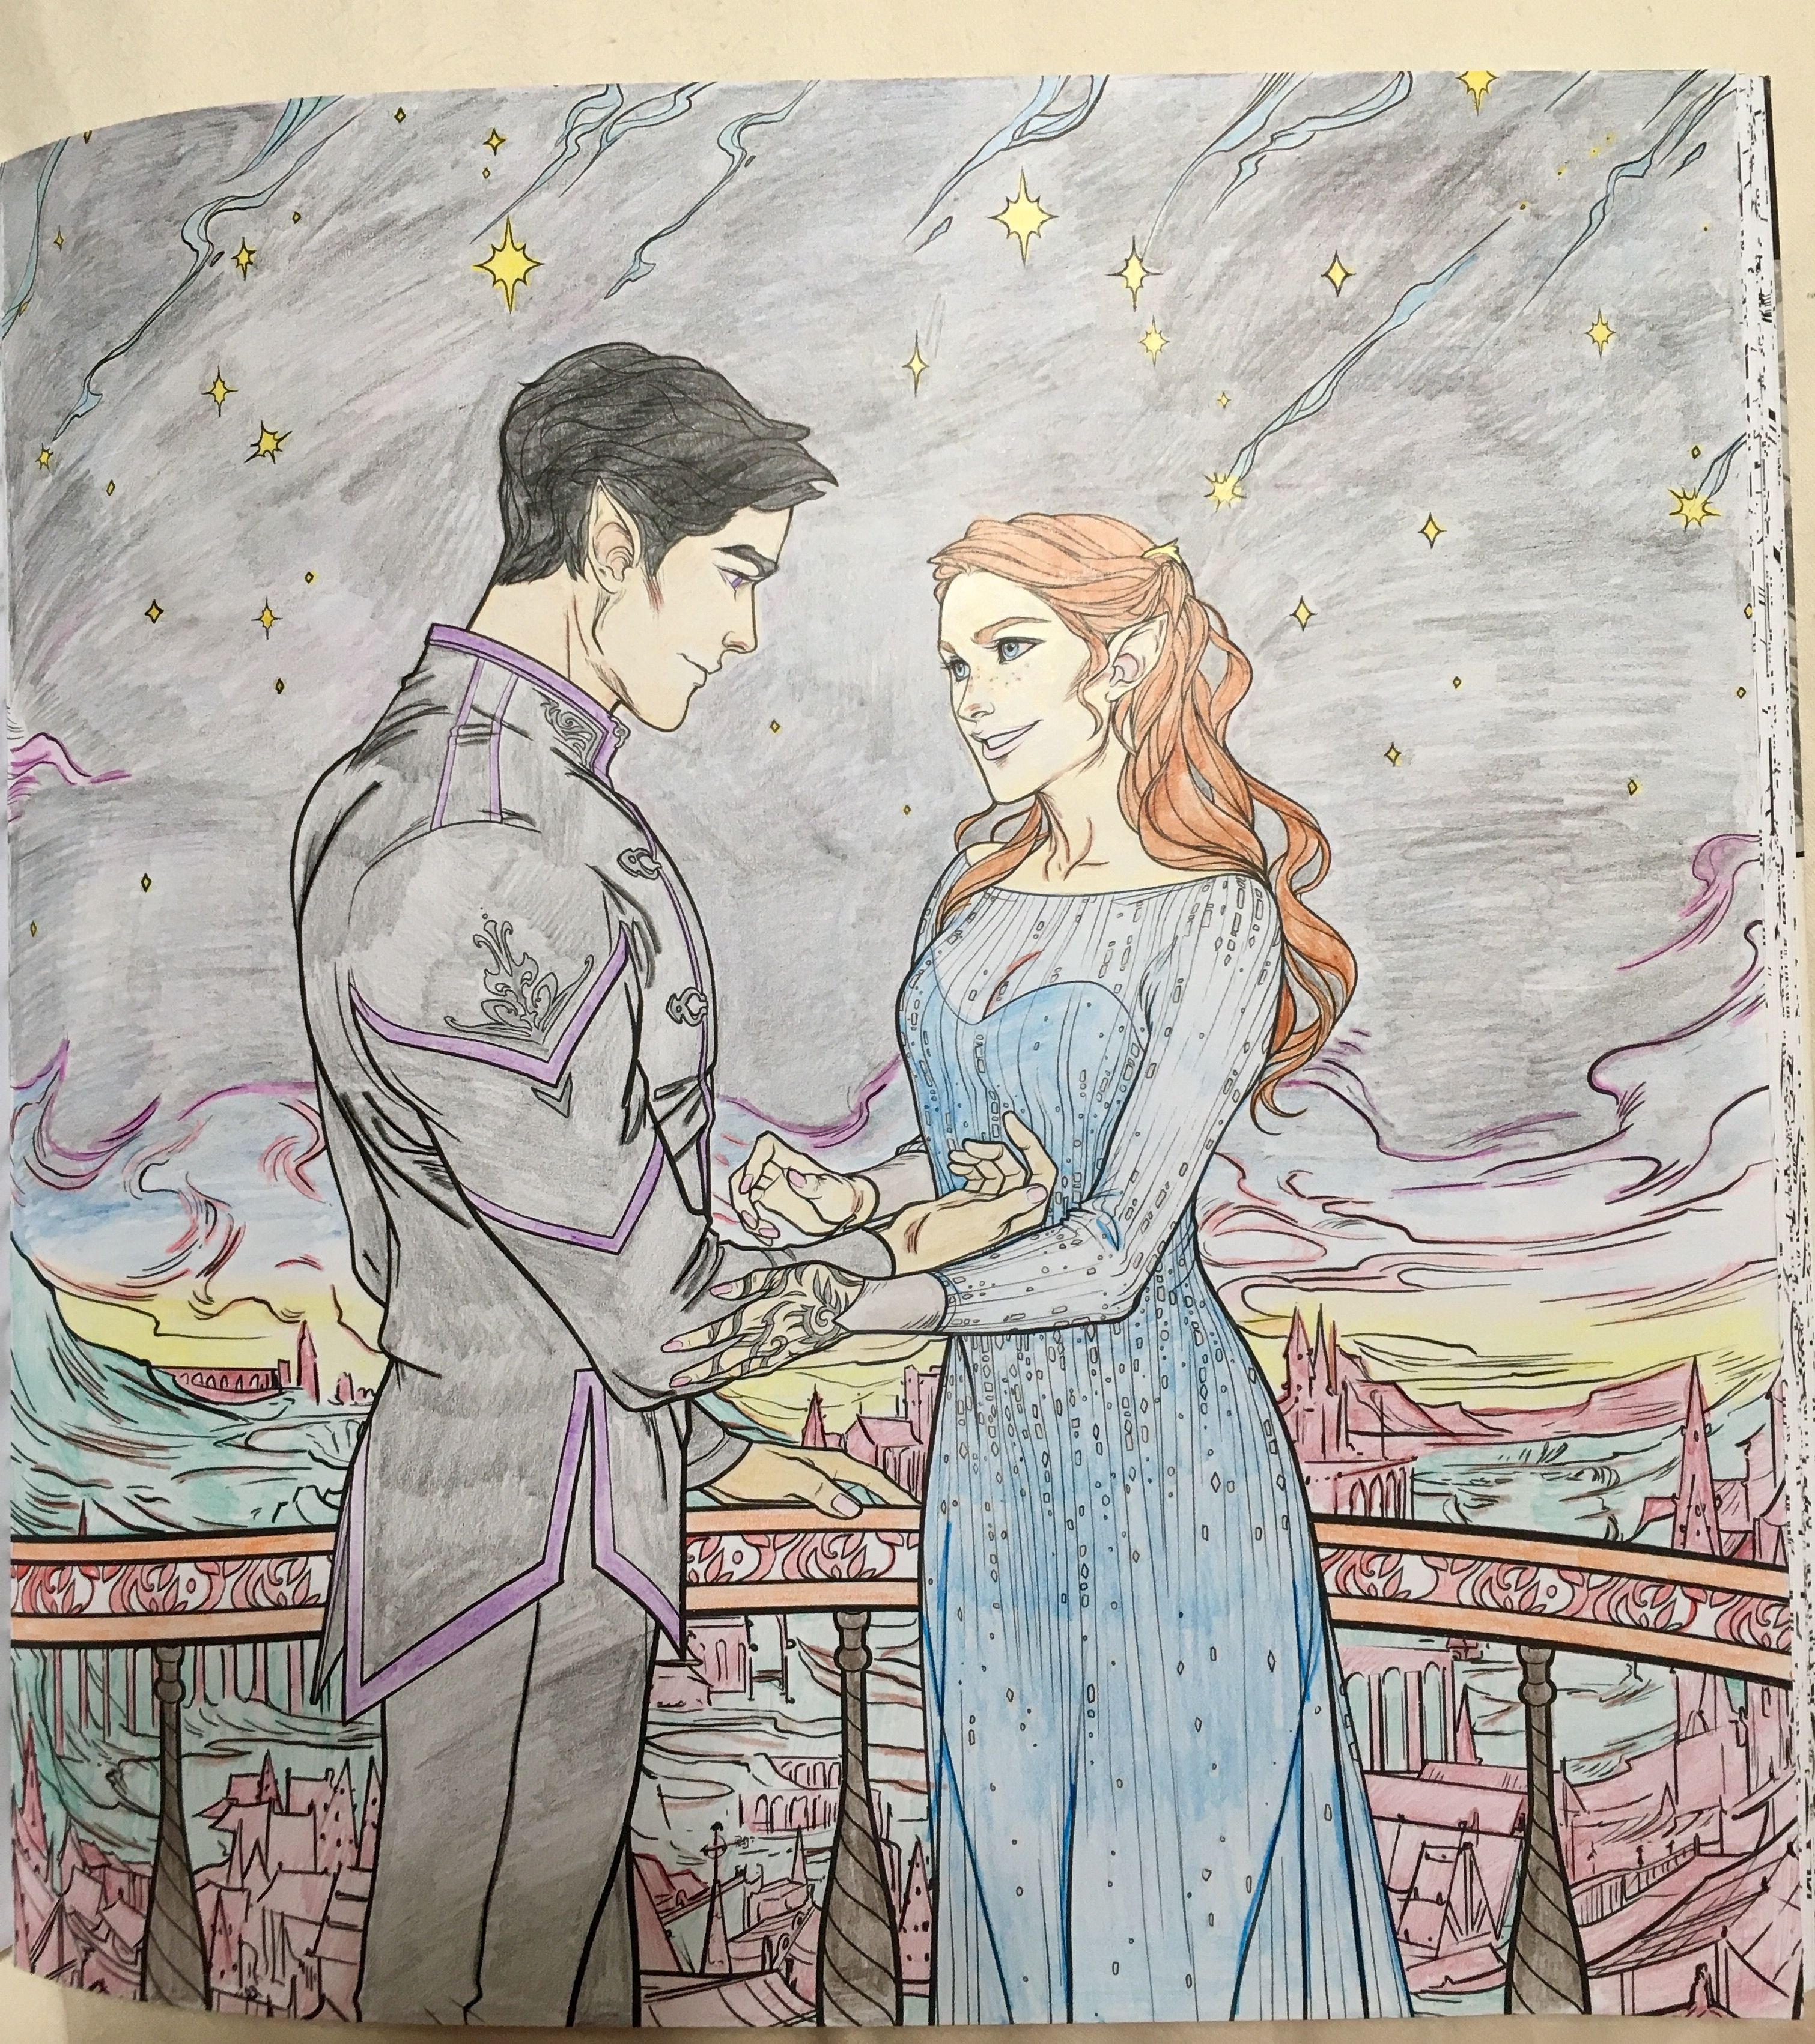 Starfall. One of my favorite scenes from a ACOMAF featured ...